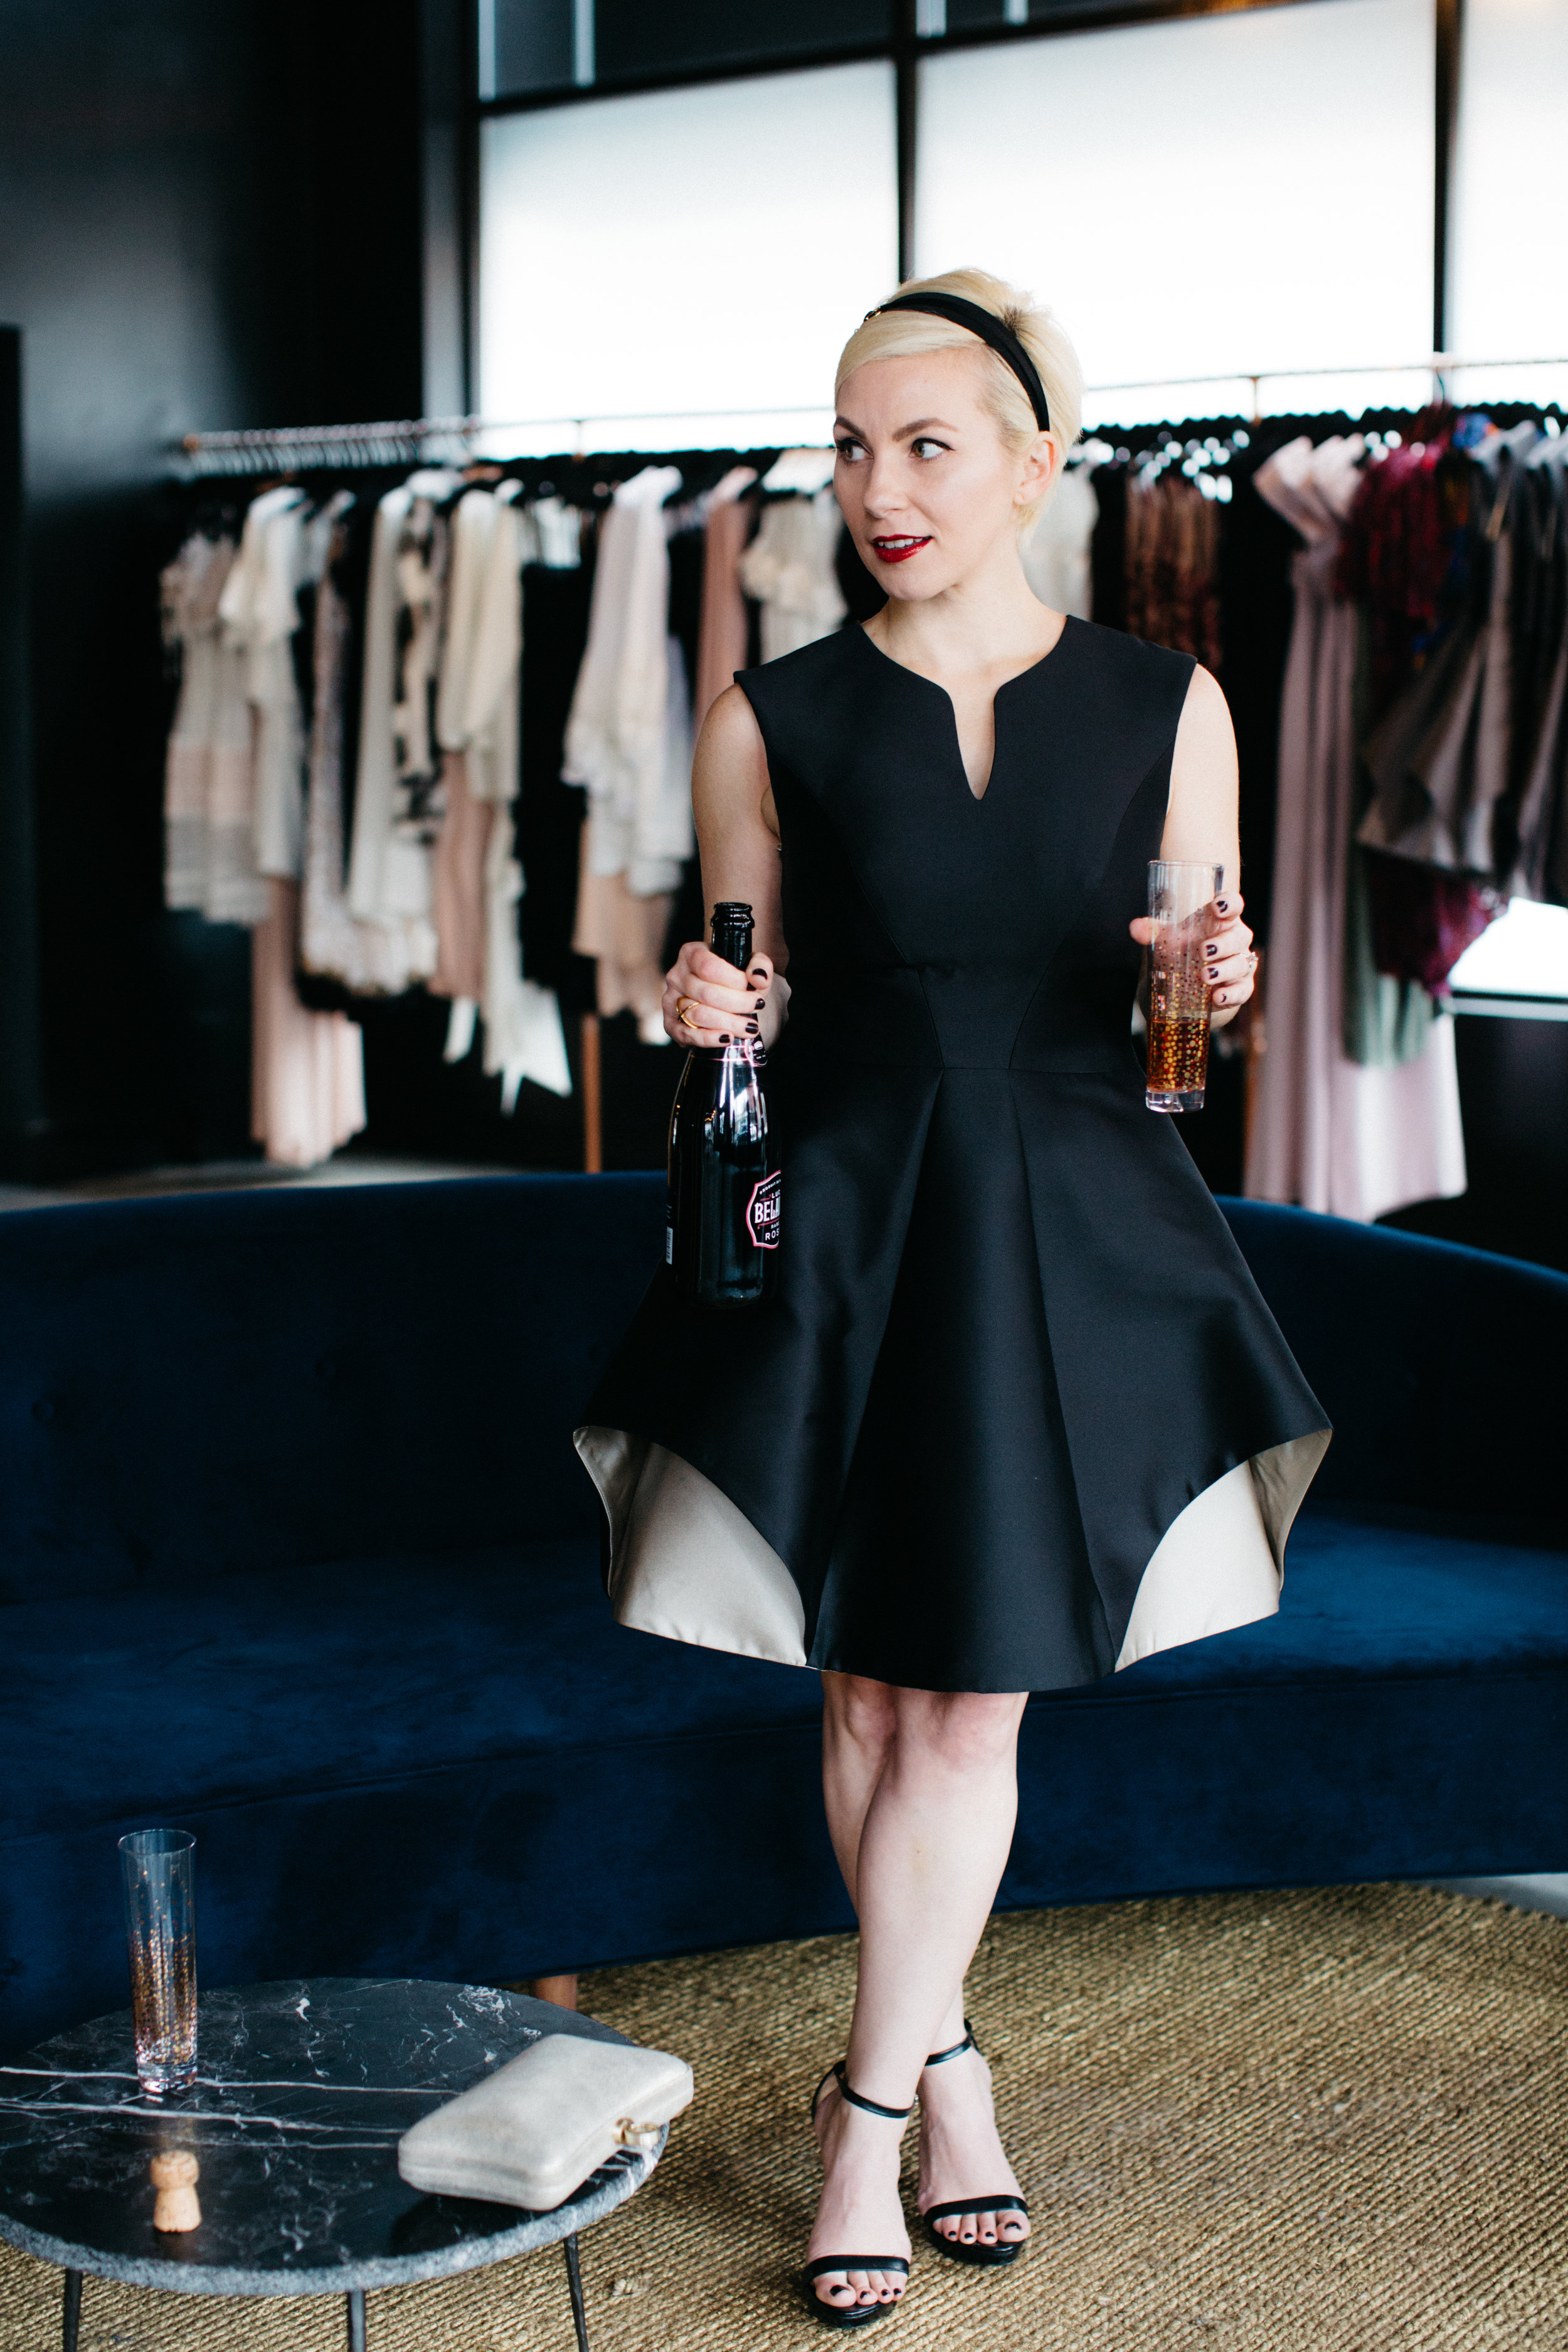 lunaboutique-pittsburgh-34.jpg